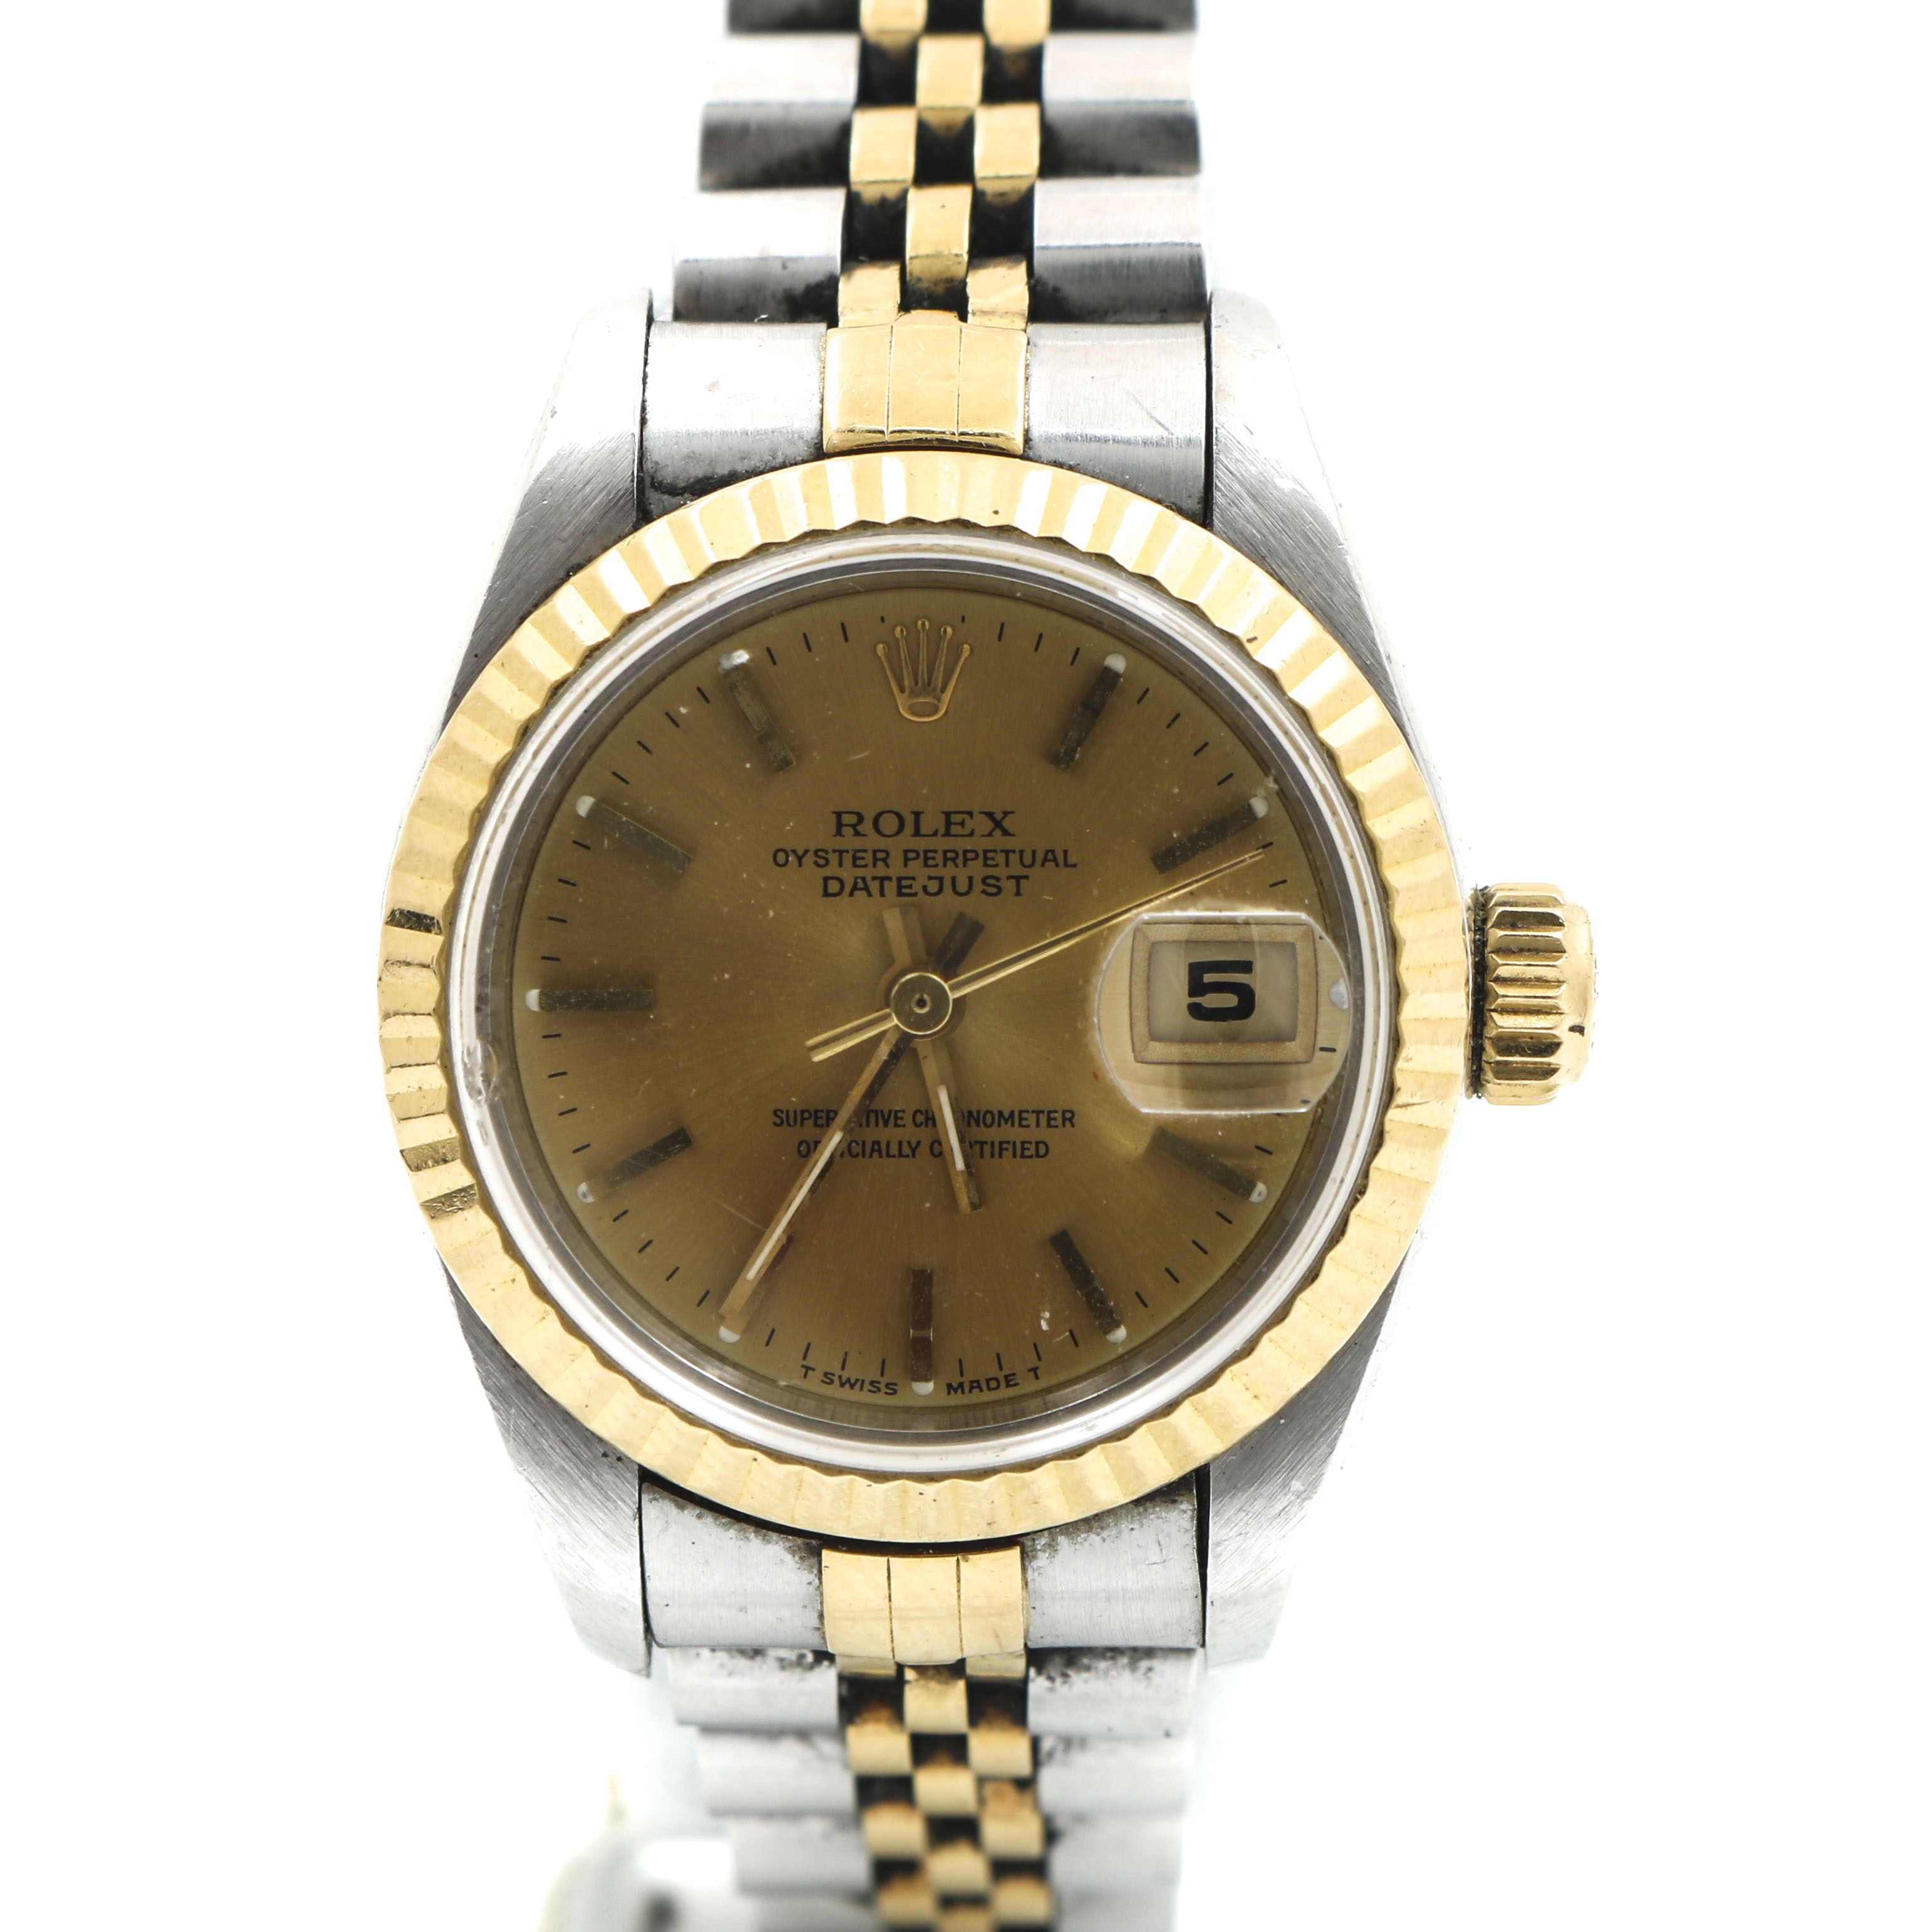 Rolex Oyster Perpetual Date Just 18K Yellow Gold & Stainless Steel Wristwatch